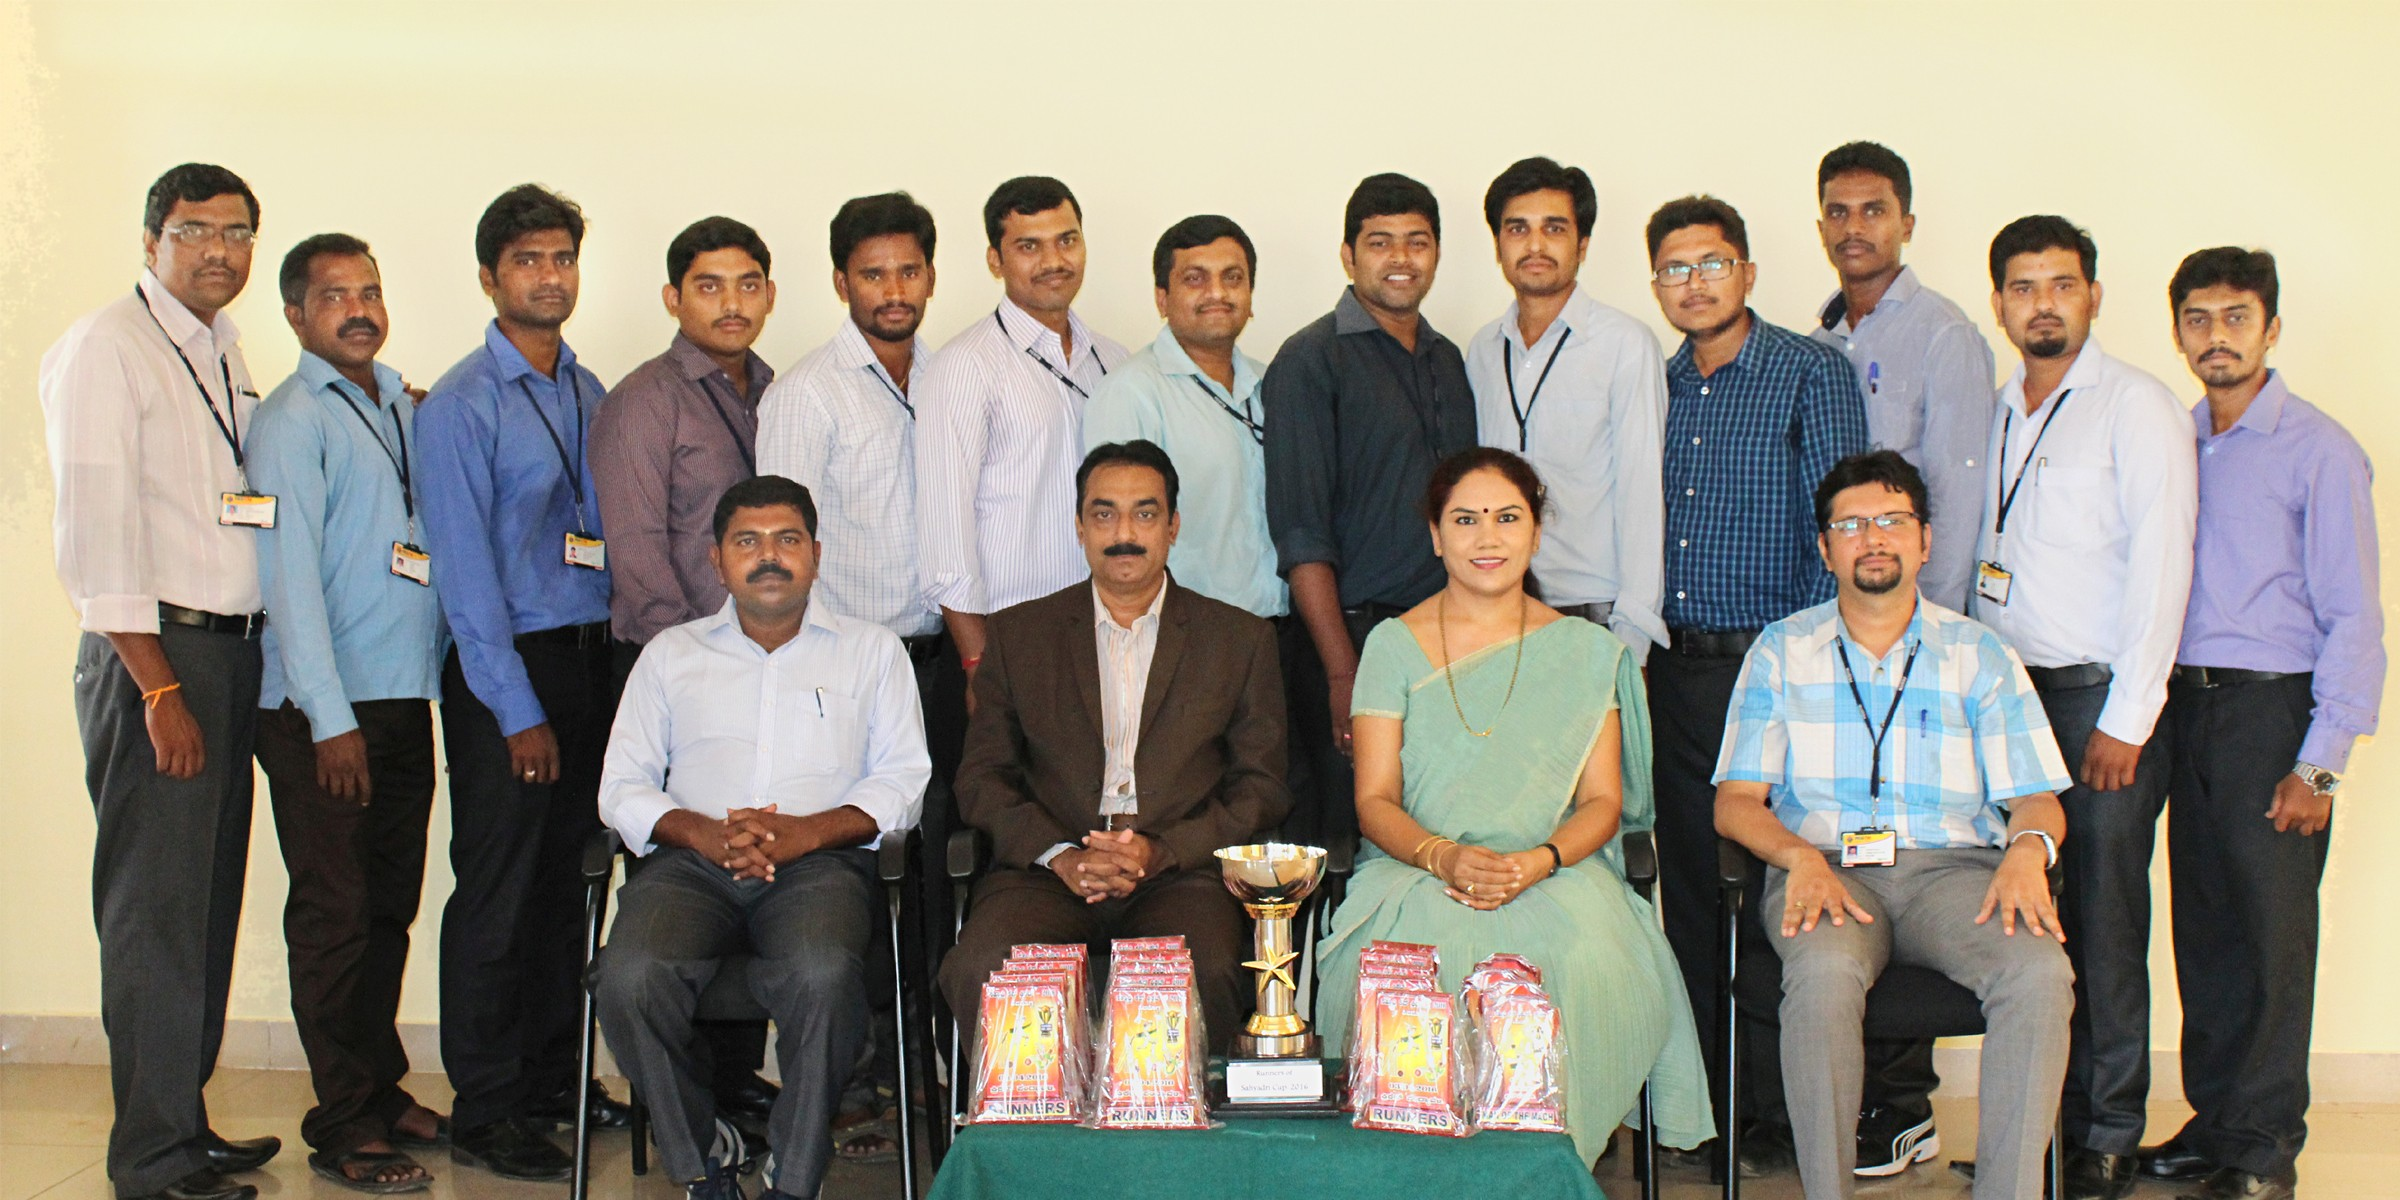 PES Staff team secures Runners up trophy